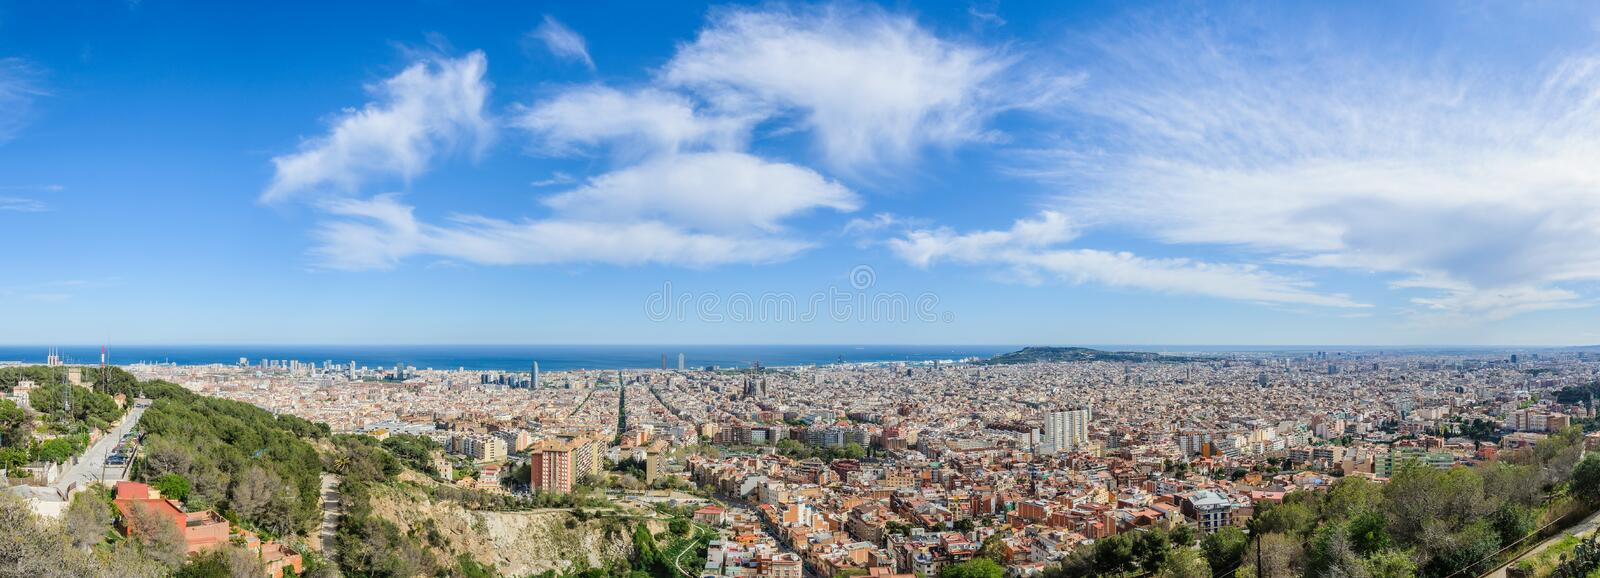 Panoramic view from Turo del Rovira in Barcelona, Spain. Birdeye view of the city from the hill of Turo del Rovira in Barcelona, Catalonia, Spain royalty free stock photography